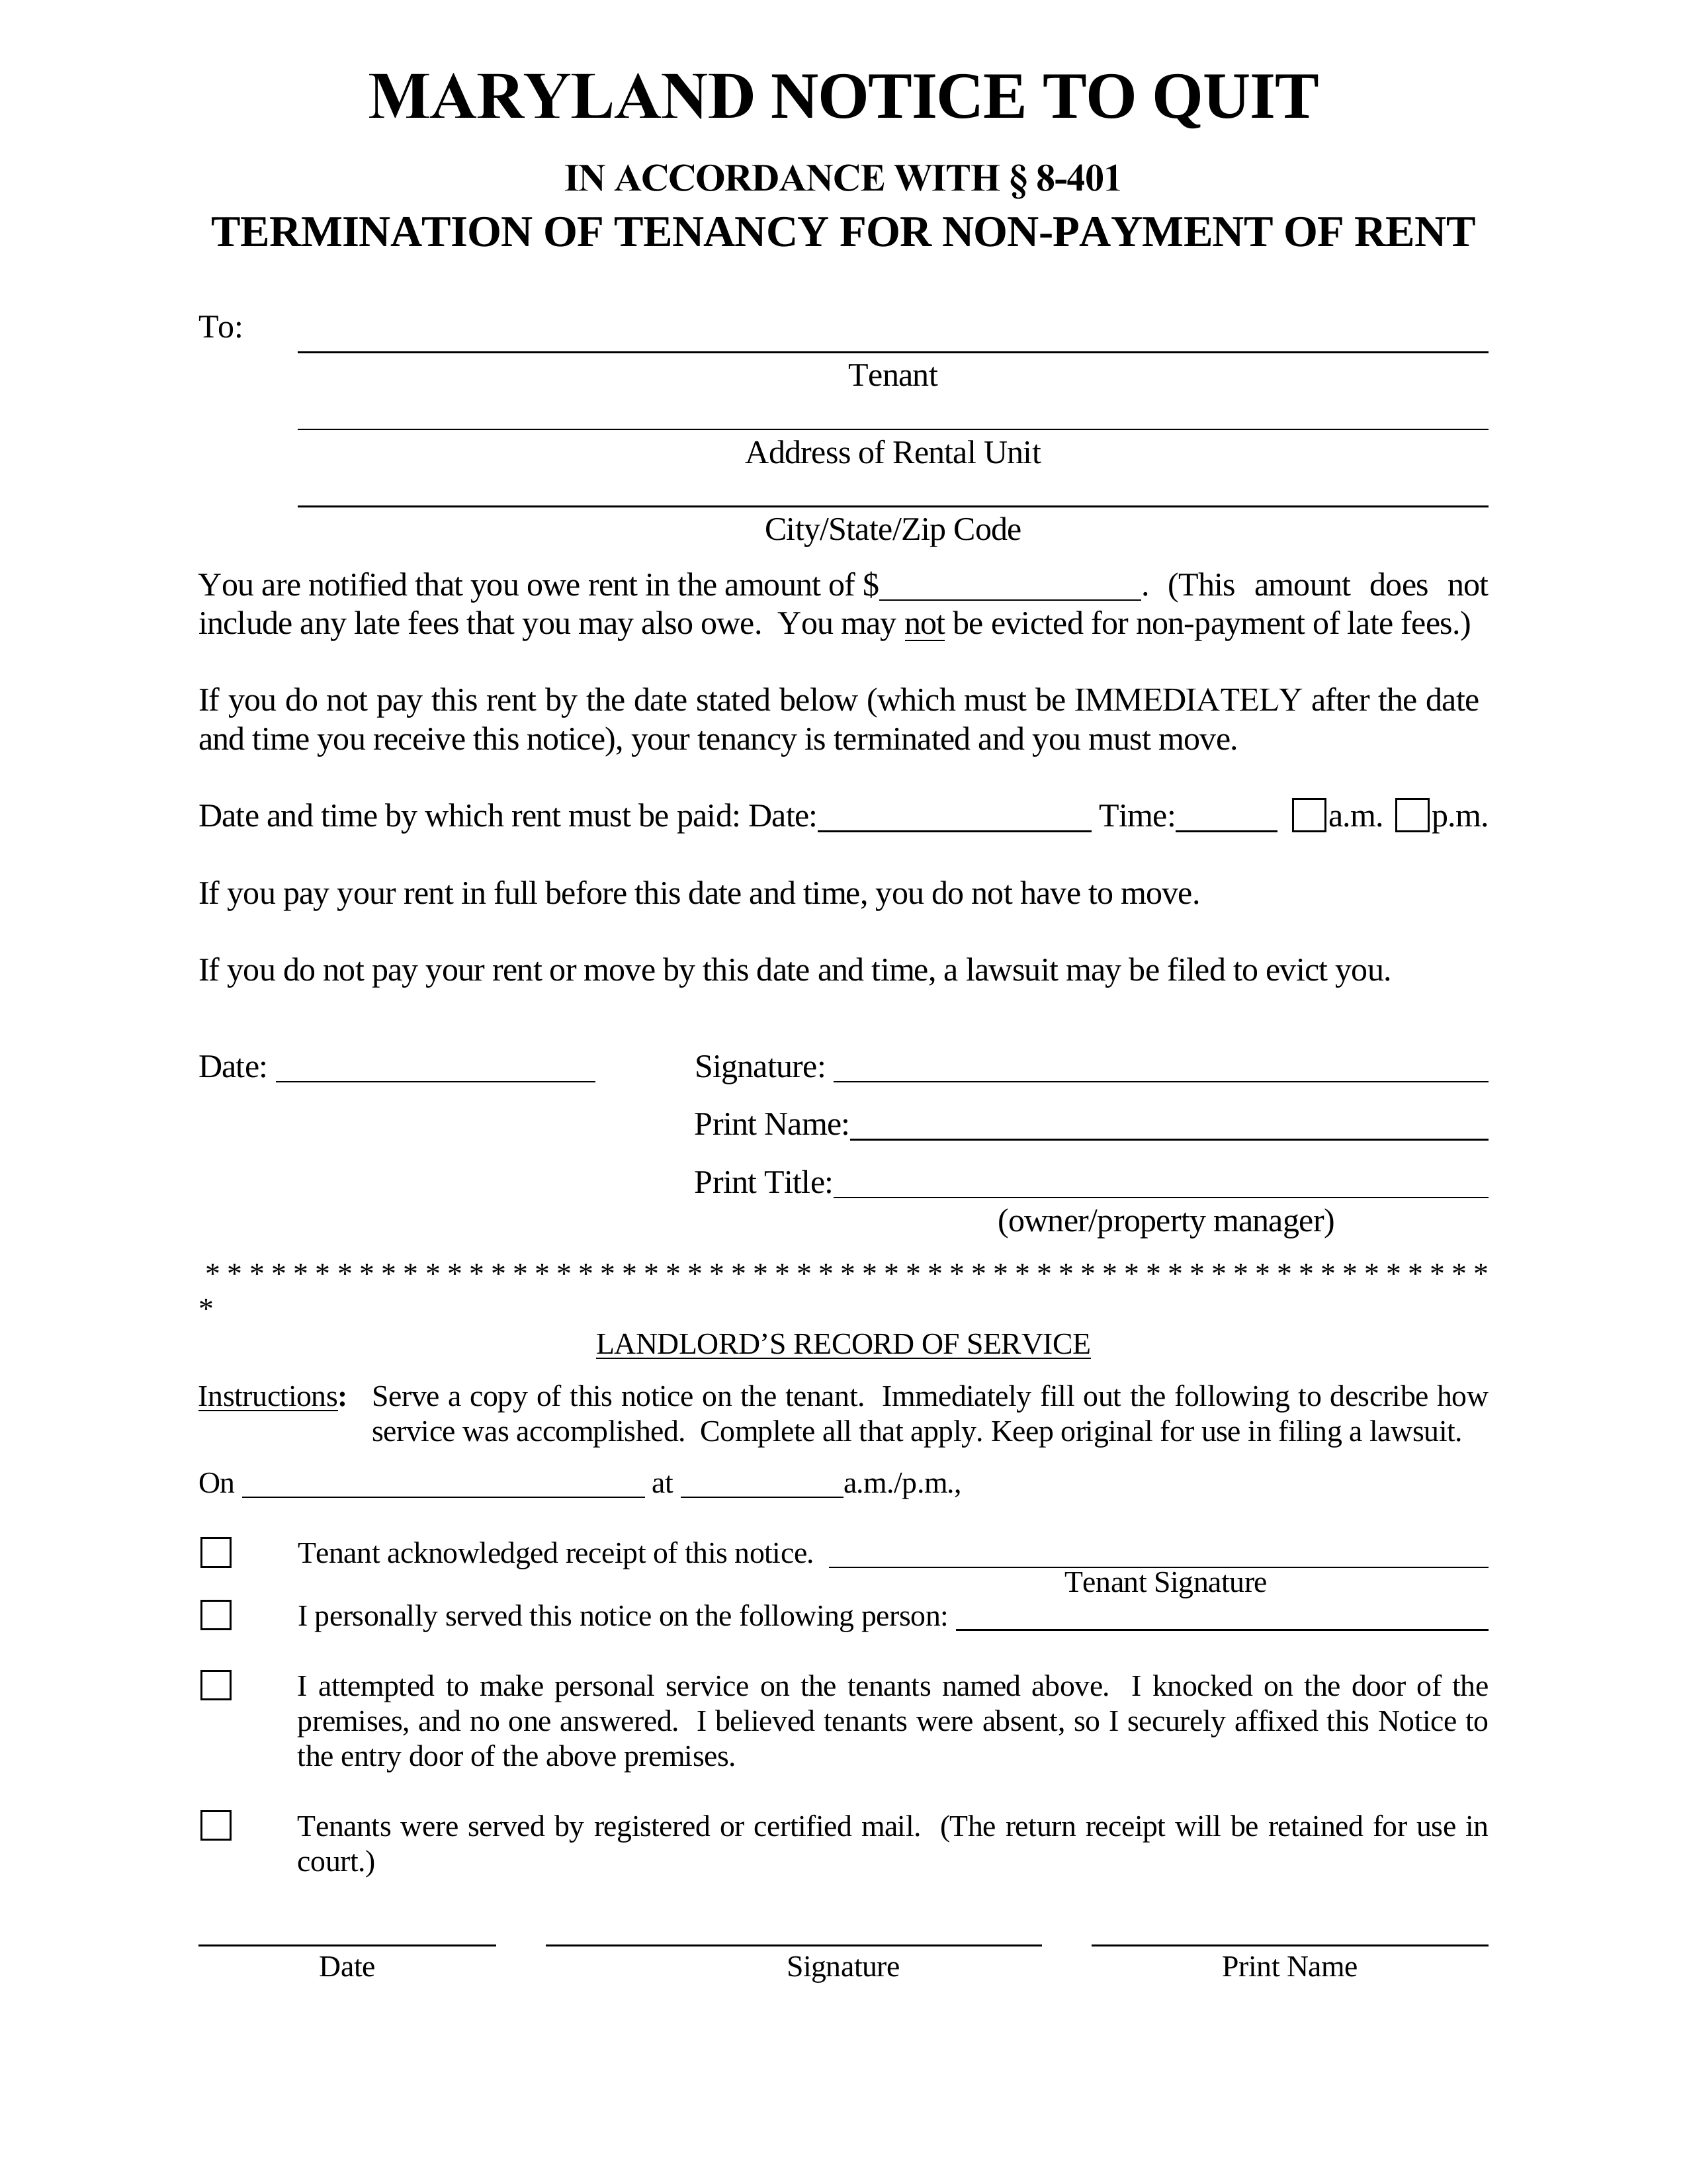 Pay Or Quit Notice Template from eforms.com